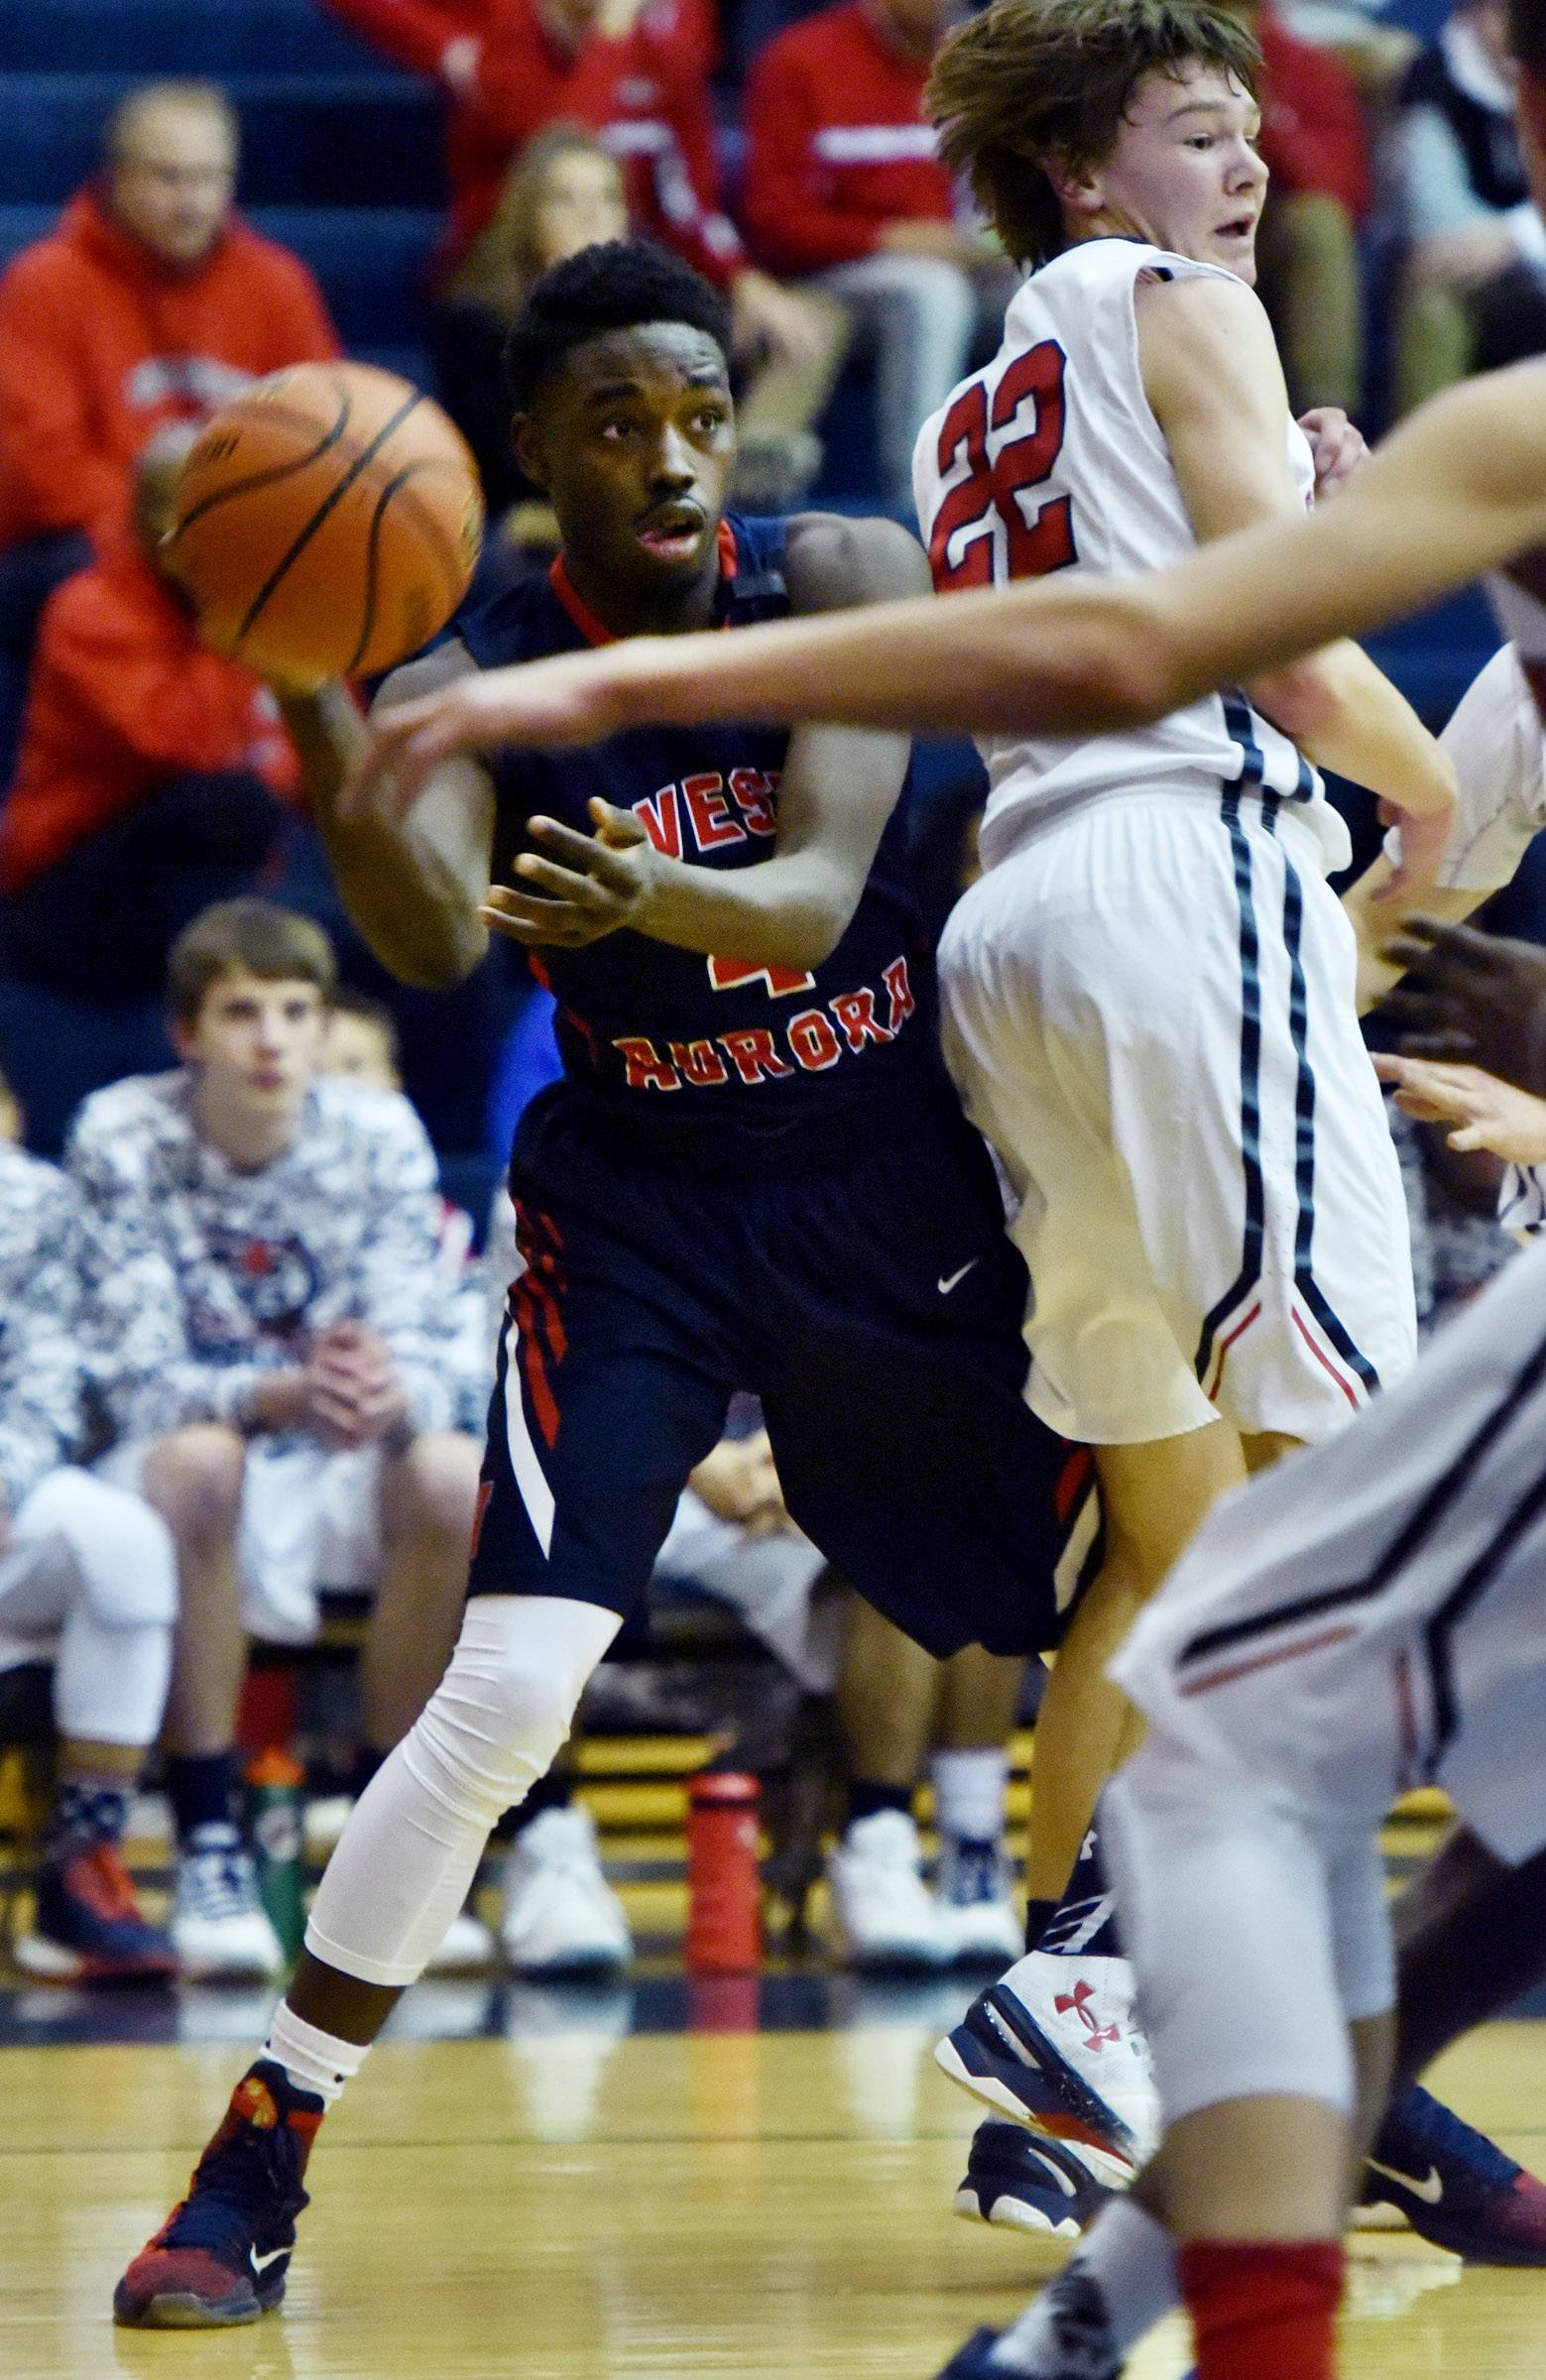 West Aurora's Dayshawnn Rogers passes around South Elgin's Noah Rohr Friday in South Elgin.